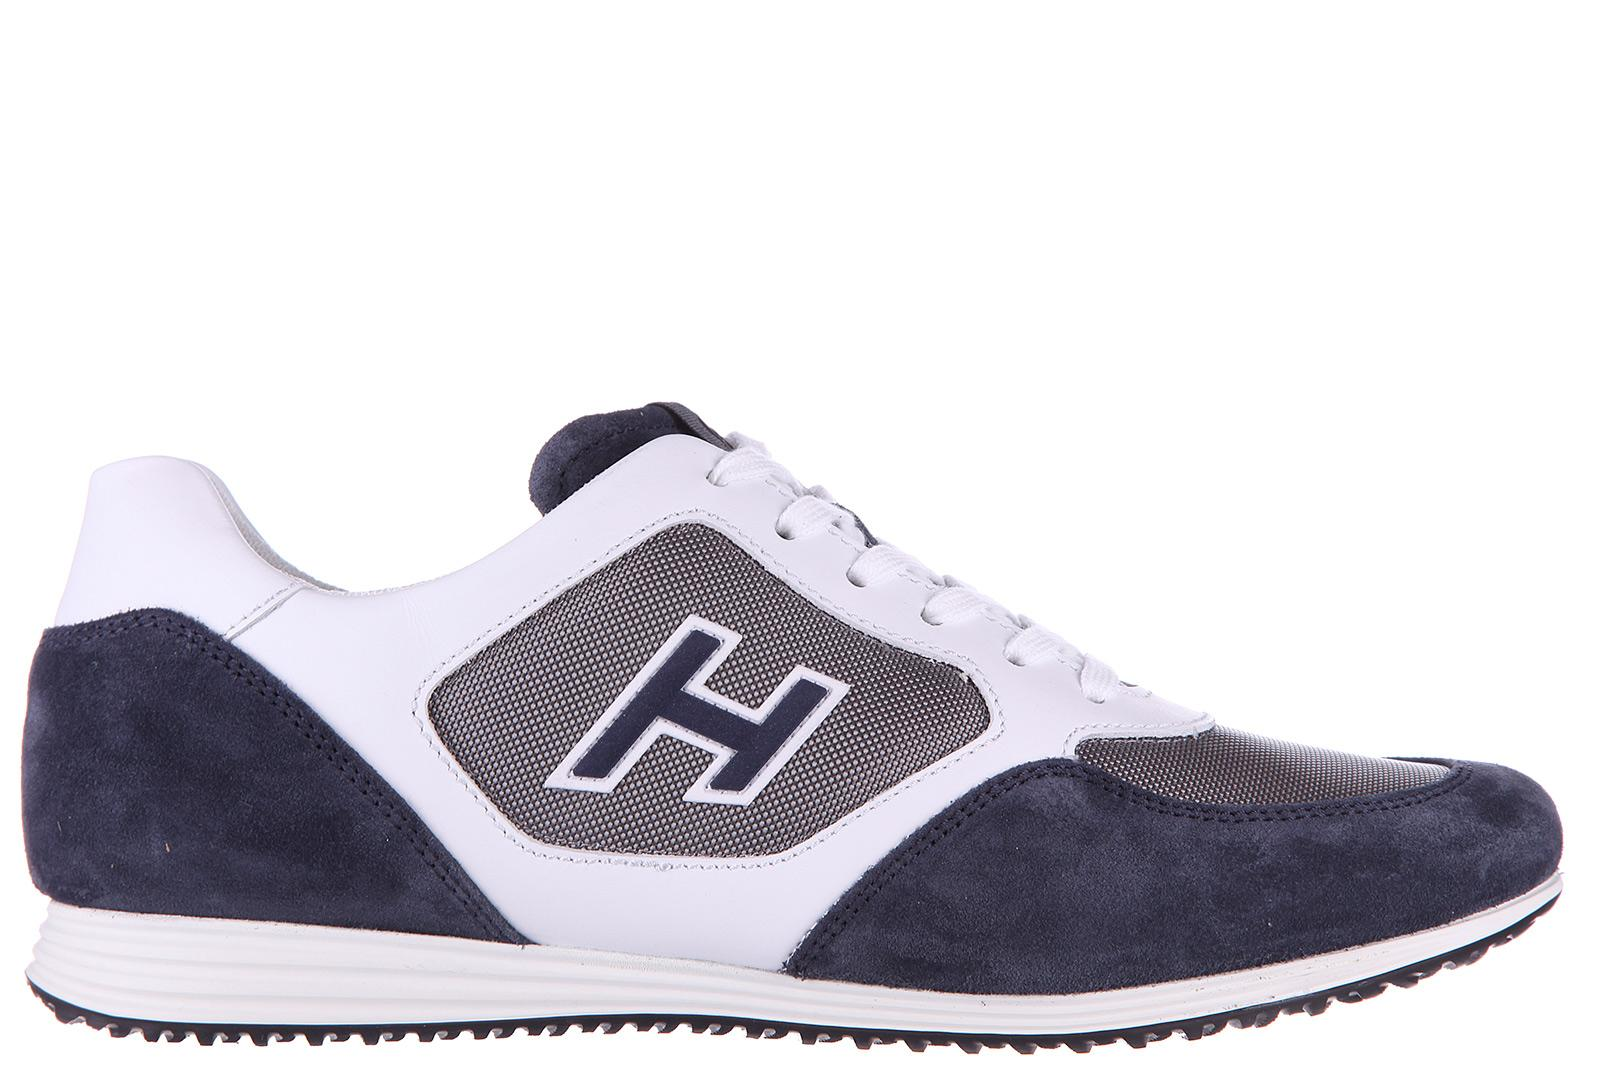 Hogan Men's Shoes Leather Trainers Sneakers H205 Olympia X H Flock ...